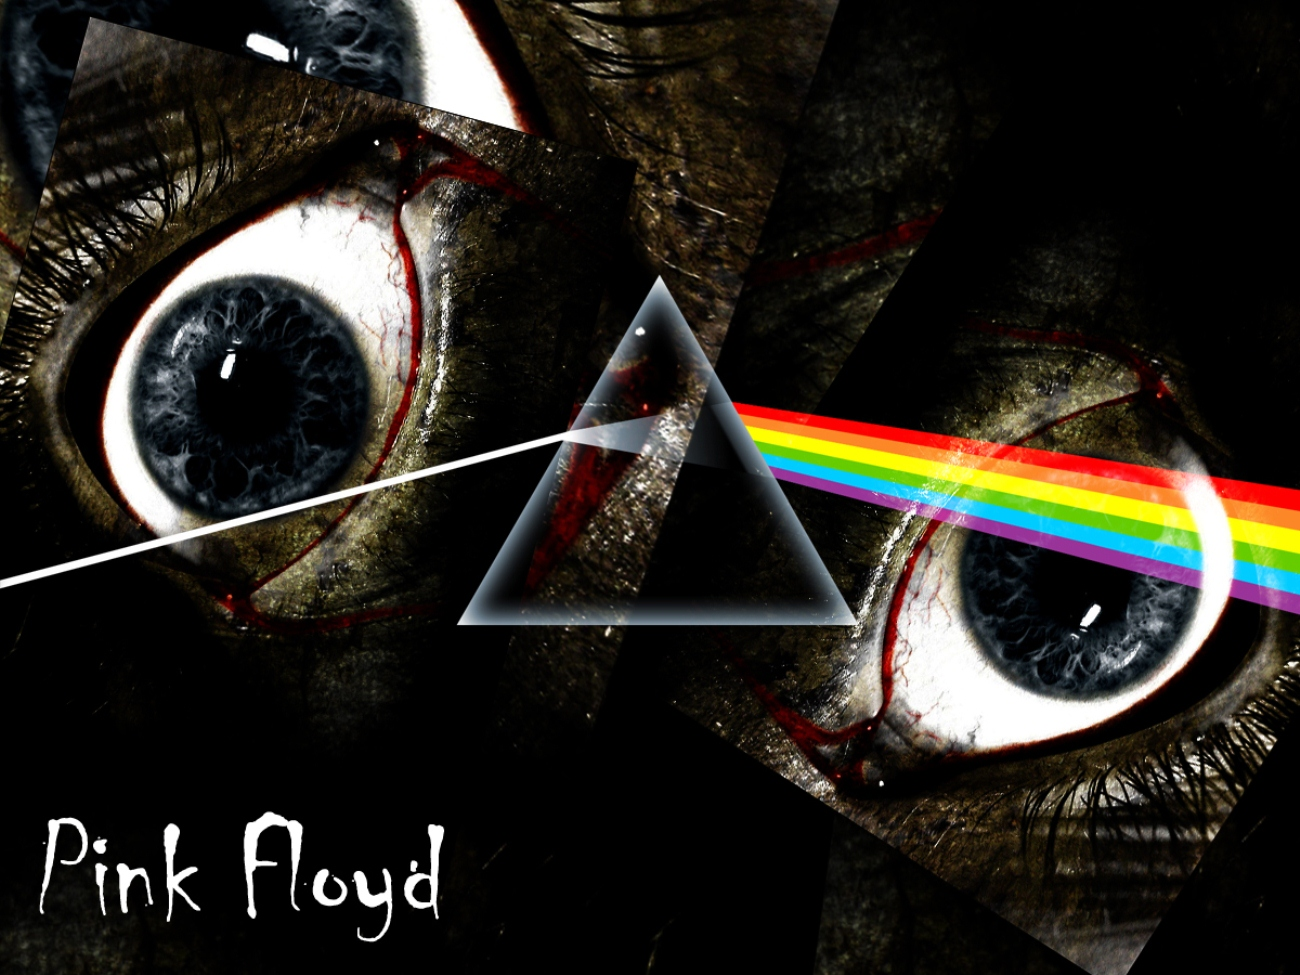 Pink Floyd Wallpaper HD For The Real Fans hd pink floyd wallpaper 1300x975